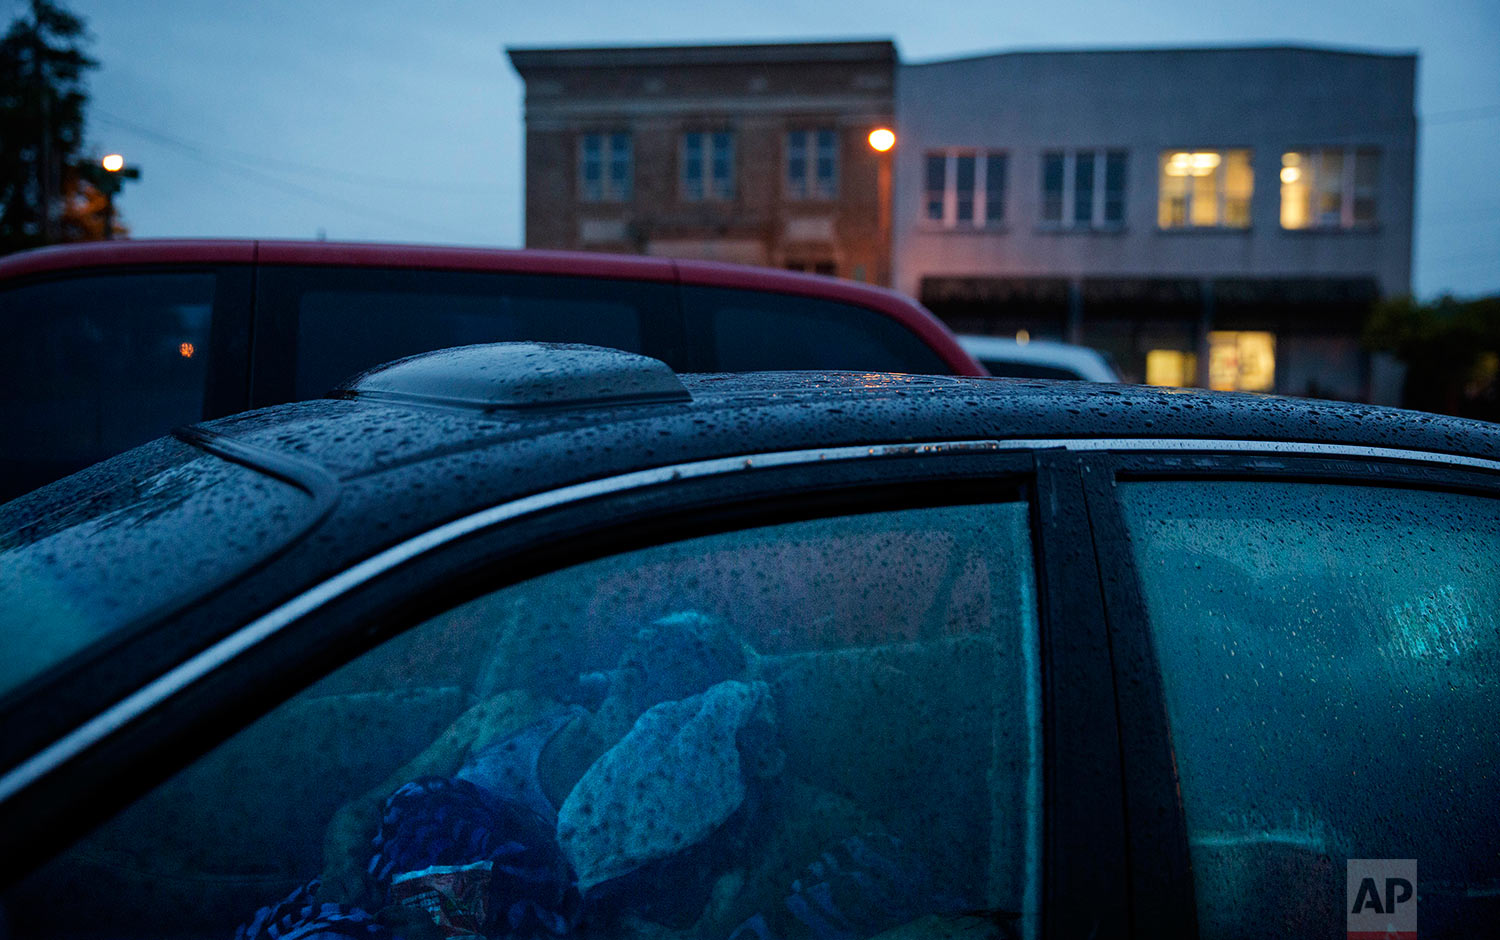 """Staci Hadley, left, and boyfriend Deric Hensler, hidden, sleep in their car overnight in a parking lot outside the methadone clinic before it opens where they get treated for their drug addiction in Hoquiam, Wash., Thursday June 15, 2017. """"Not too long ago we were thinking 'oh how the mighty have fallen',"""" said Hadley. The two used to have jobs, bank accounts, credit cards, a house before Hensler lost his job and insurance to cover methadone treatments. """"I know we're kind of messed out right now,"""" added Hadley. """"But this is not my life."""" (AP Photo/David Goldman)"""